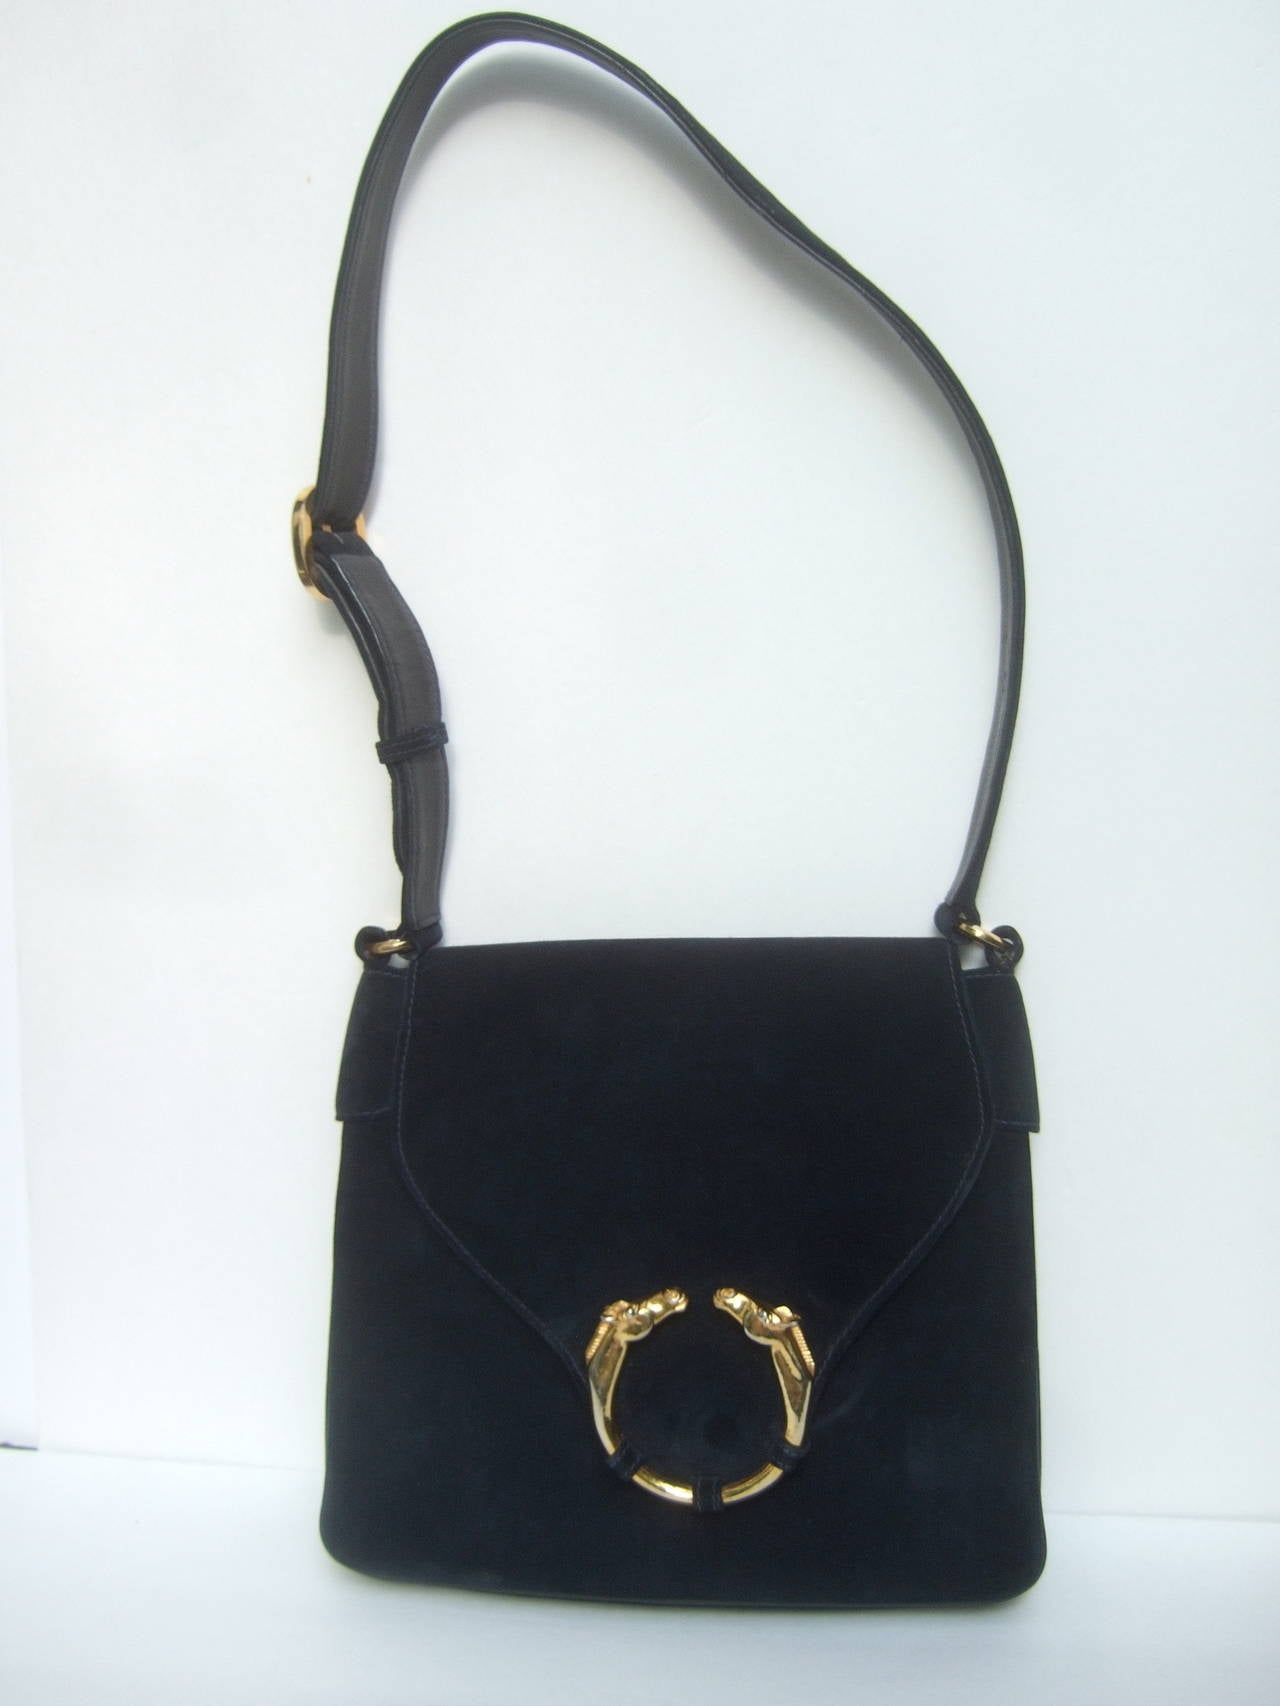 Women's Gucci Equine Emblem Midnight Blue Suede Shoulder Bag c 1970 For Sale